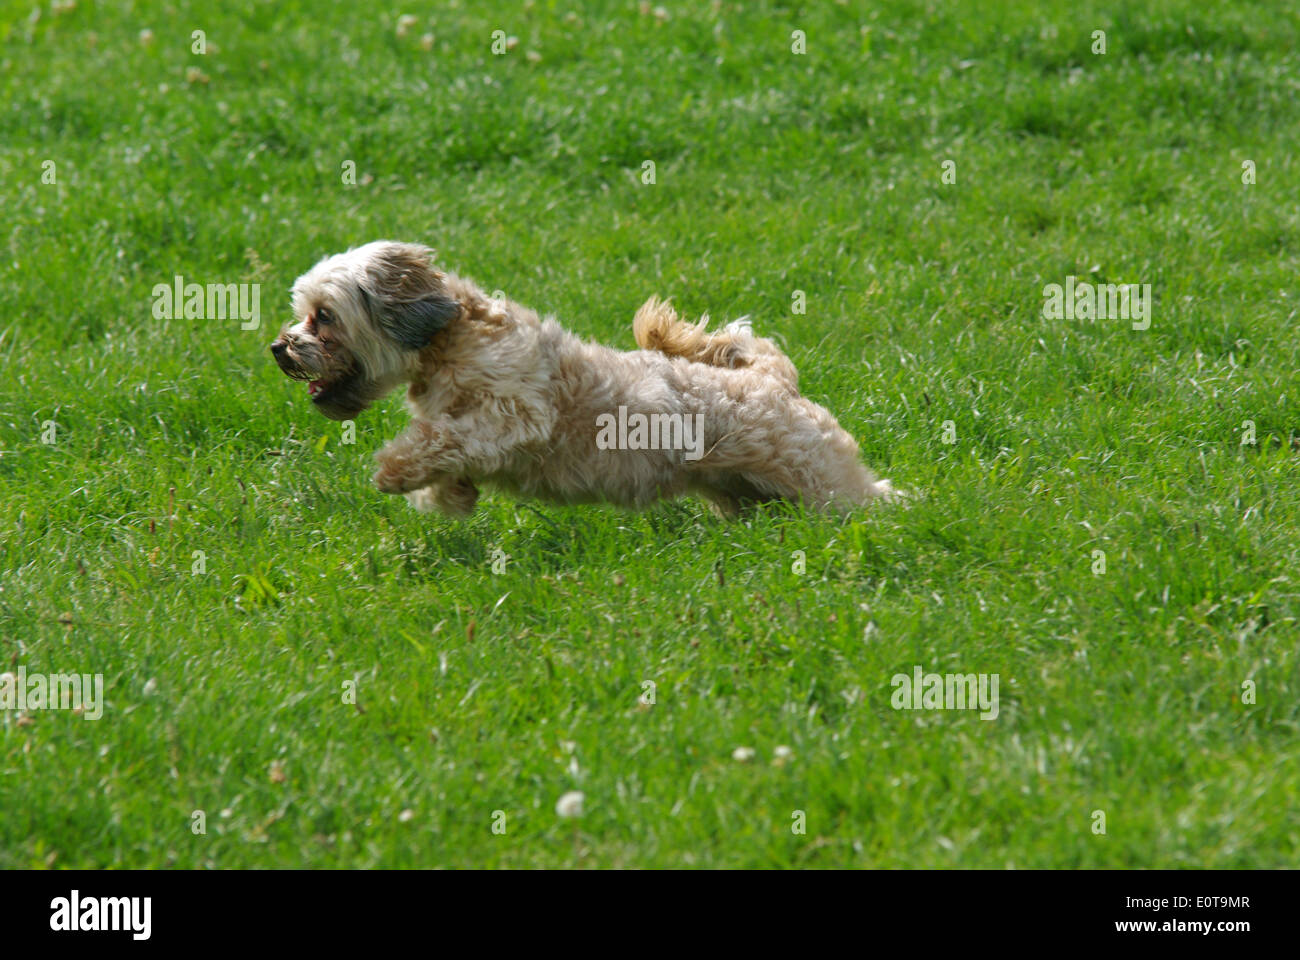 Lovely bichon dog running on the grass. - Stock Image